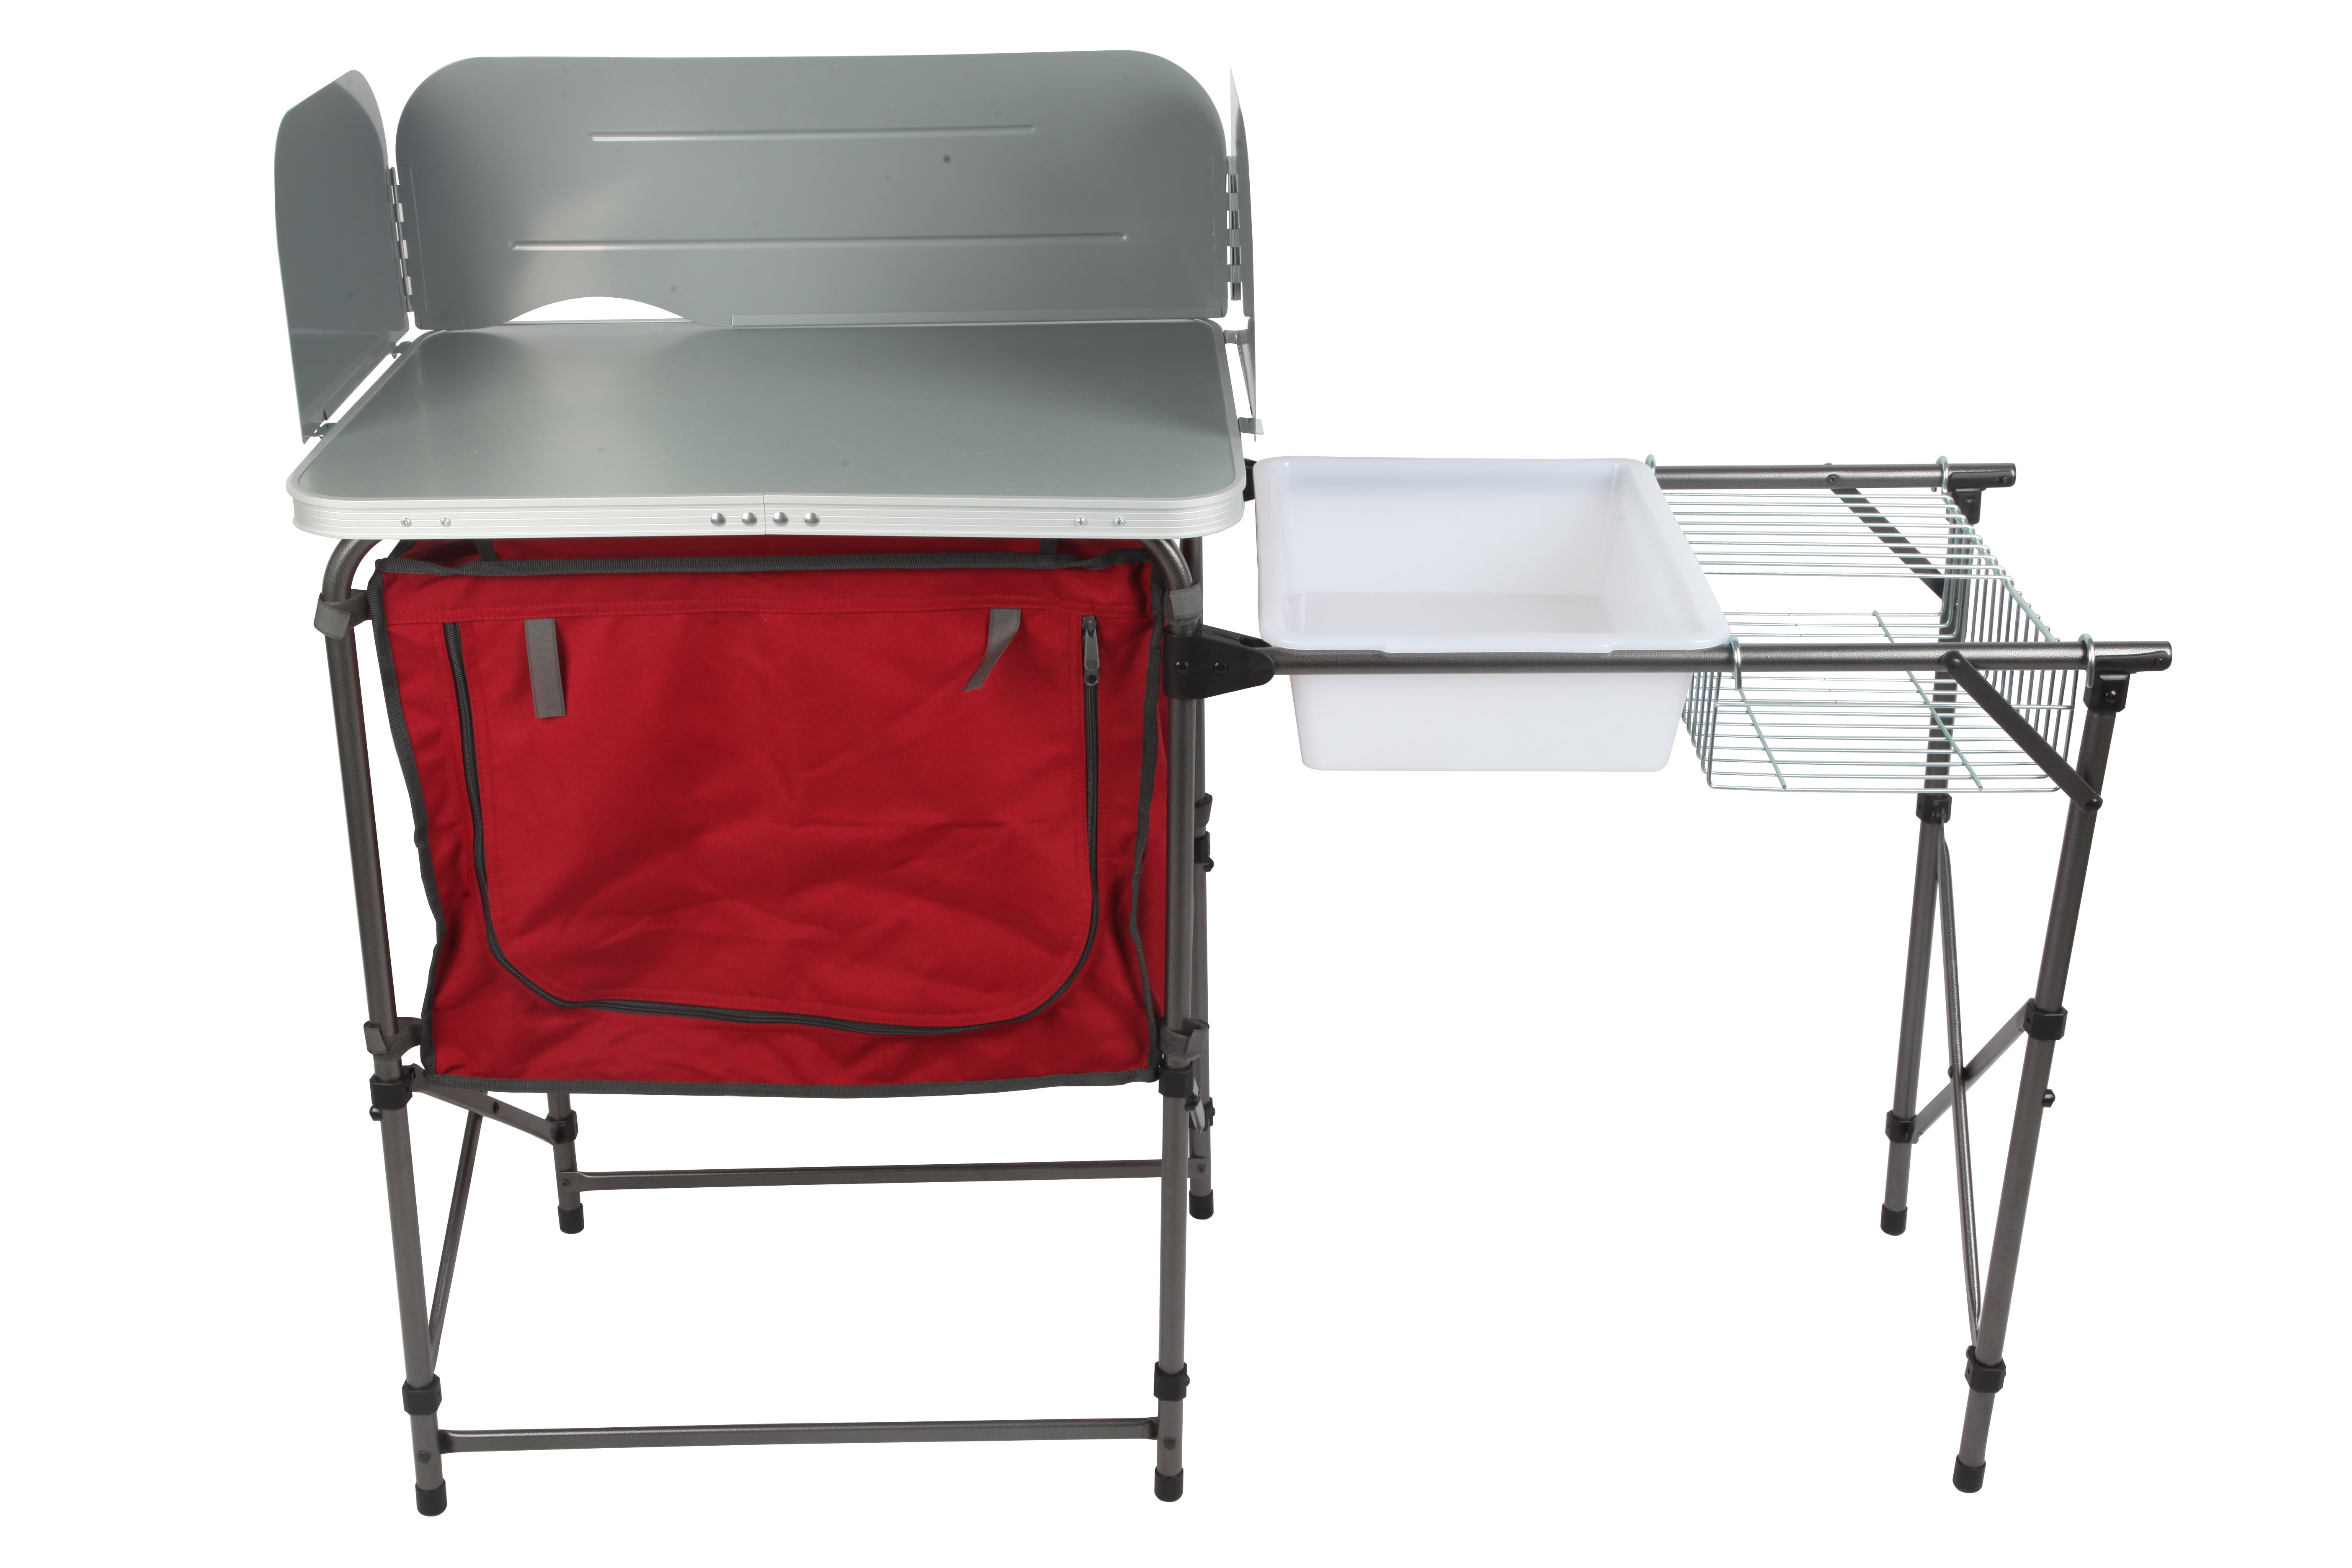 Ozark Trail Deluxe Camp Kitchen and Sink Table - Walmart.com